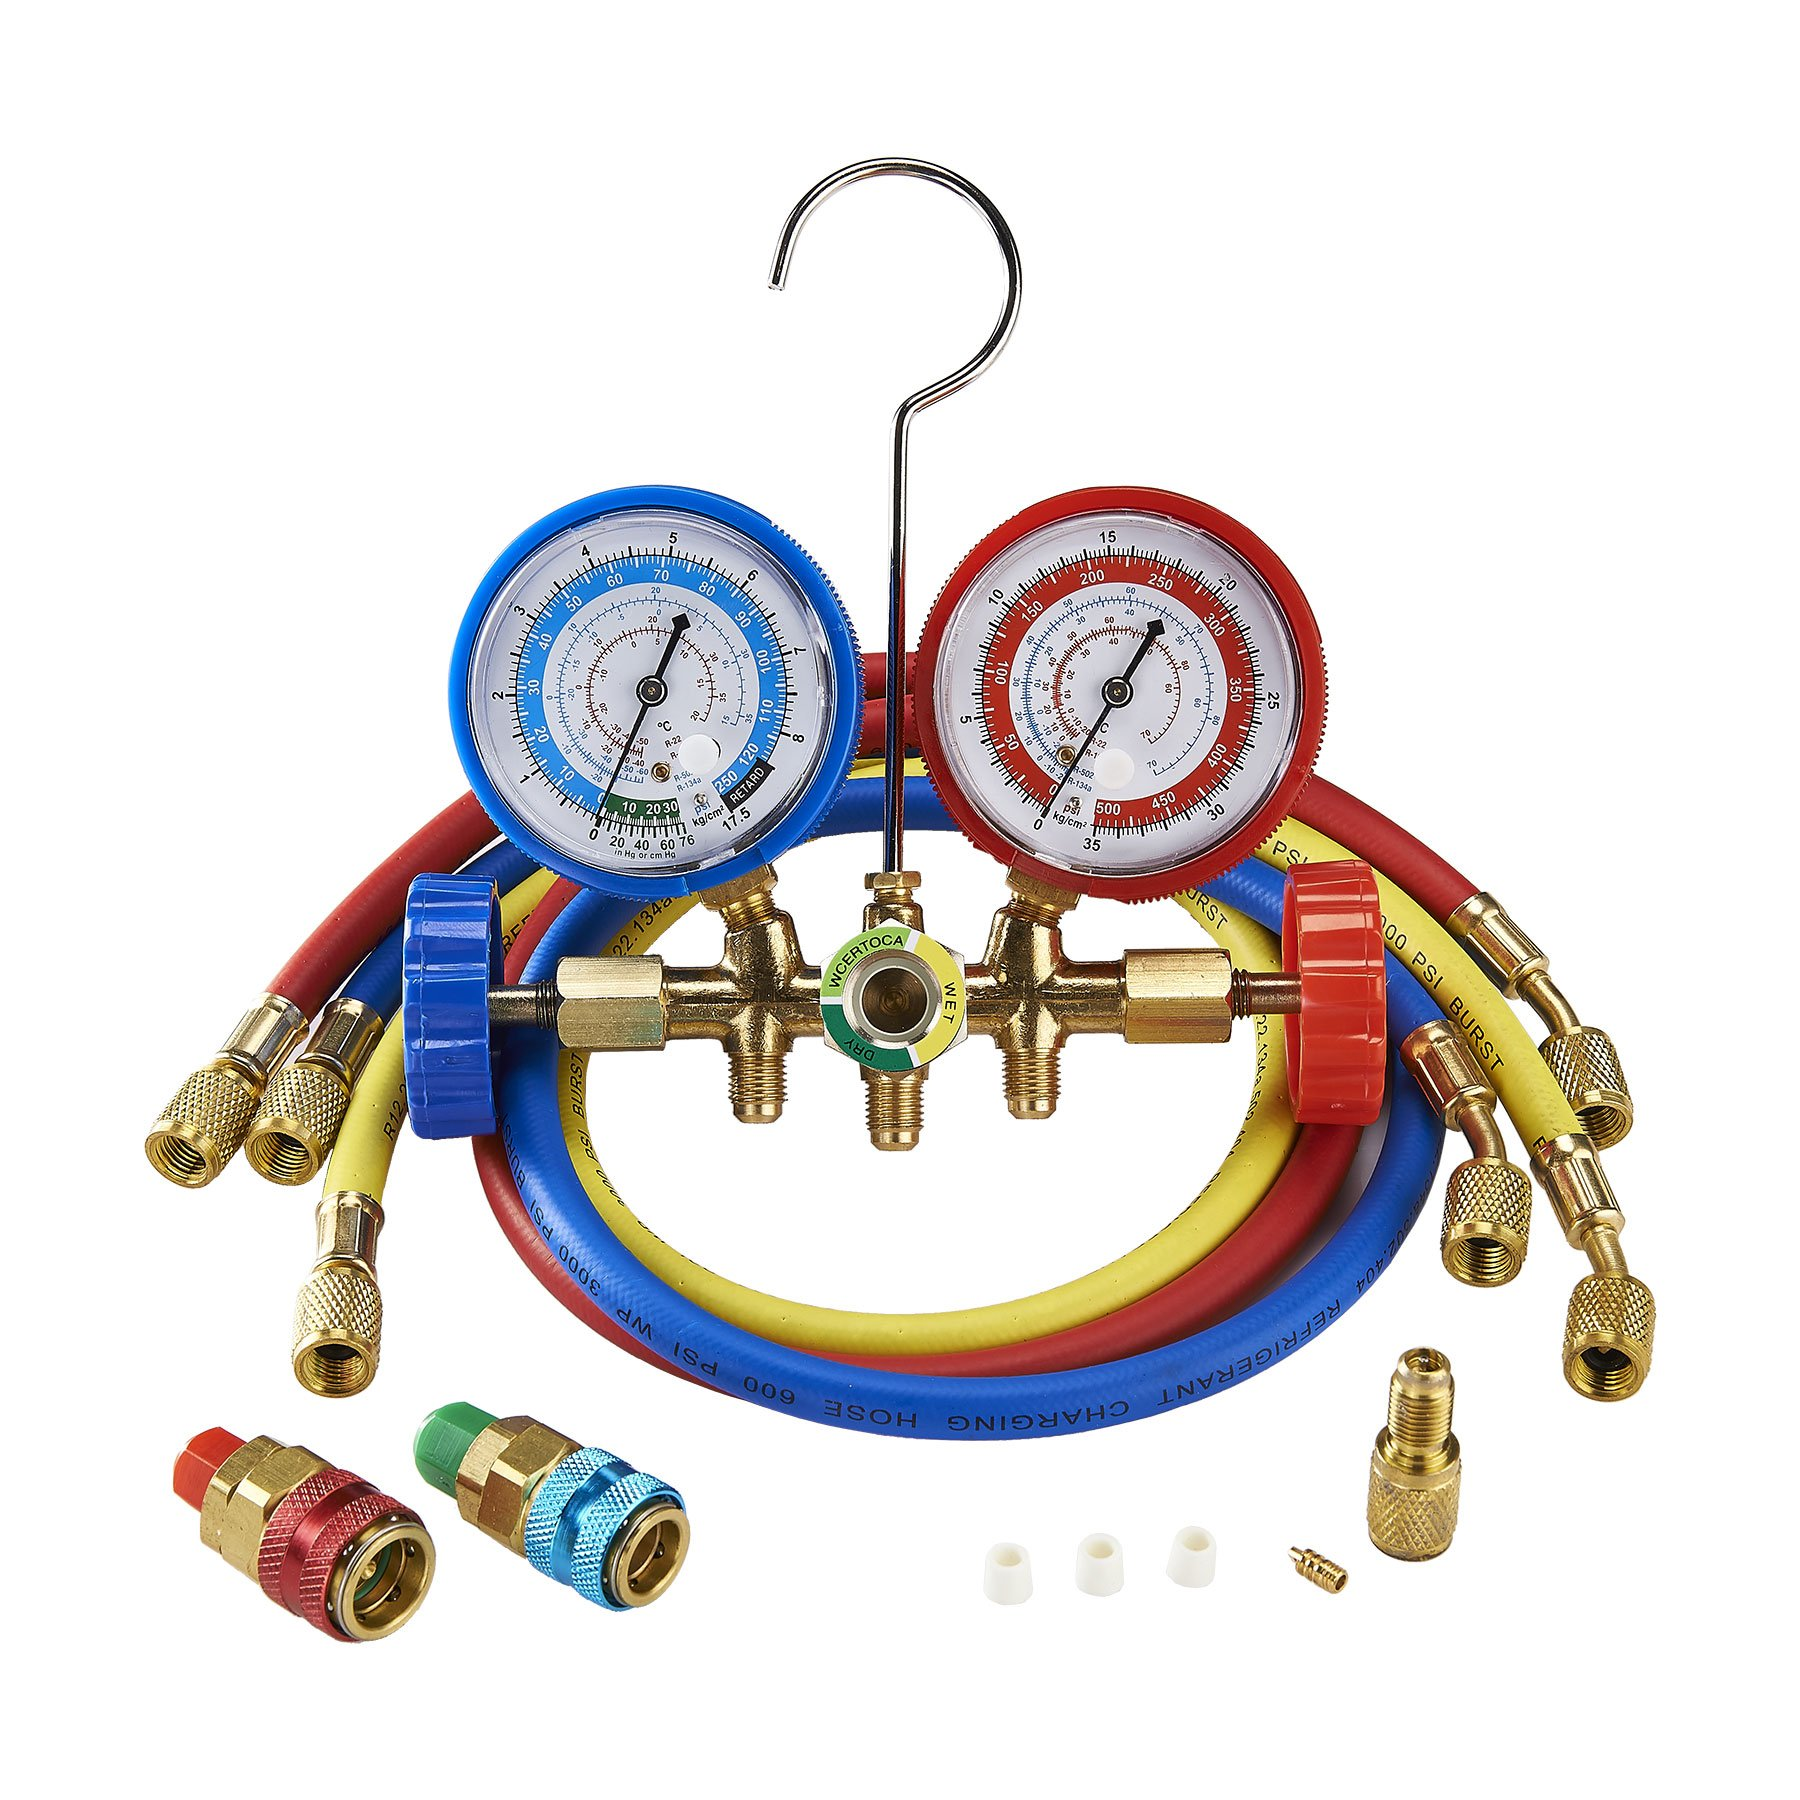 OrionMotorTech 3FT AC Diagnostic Manifold Freon Gauge Set for R134A R12, R22, R502 Refrigerants, with Couplers and Acme Adapter